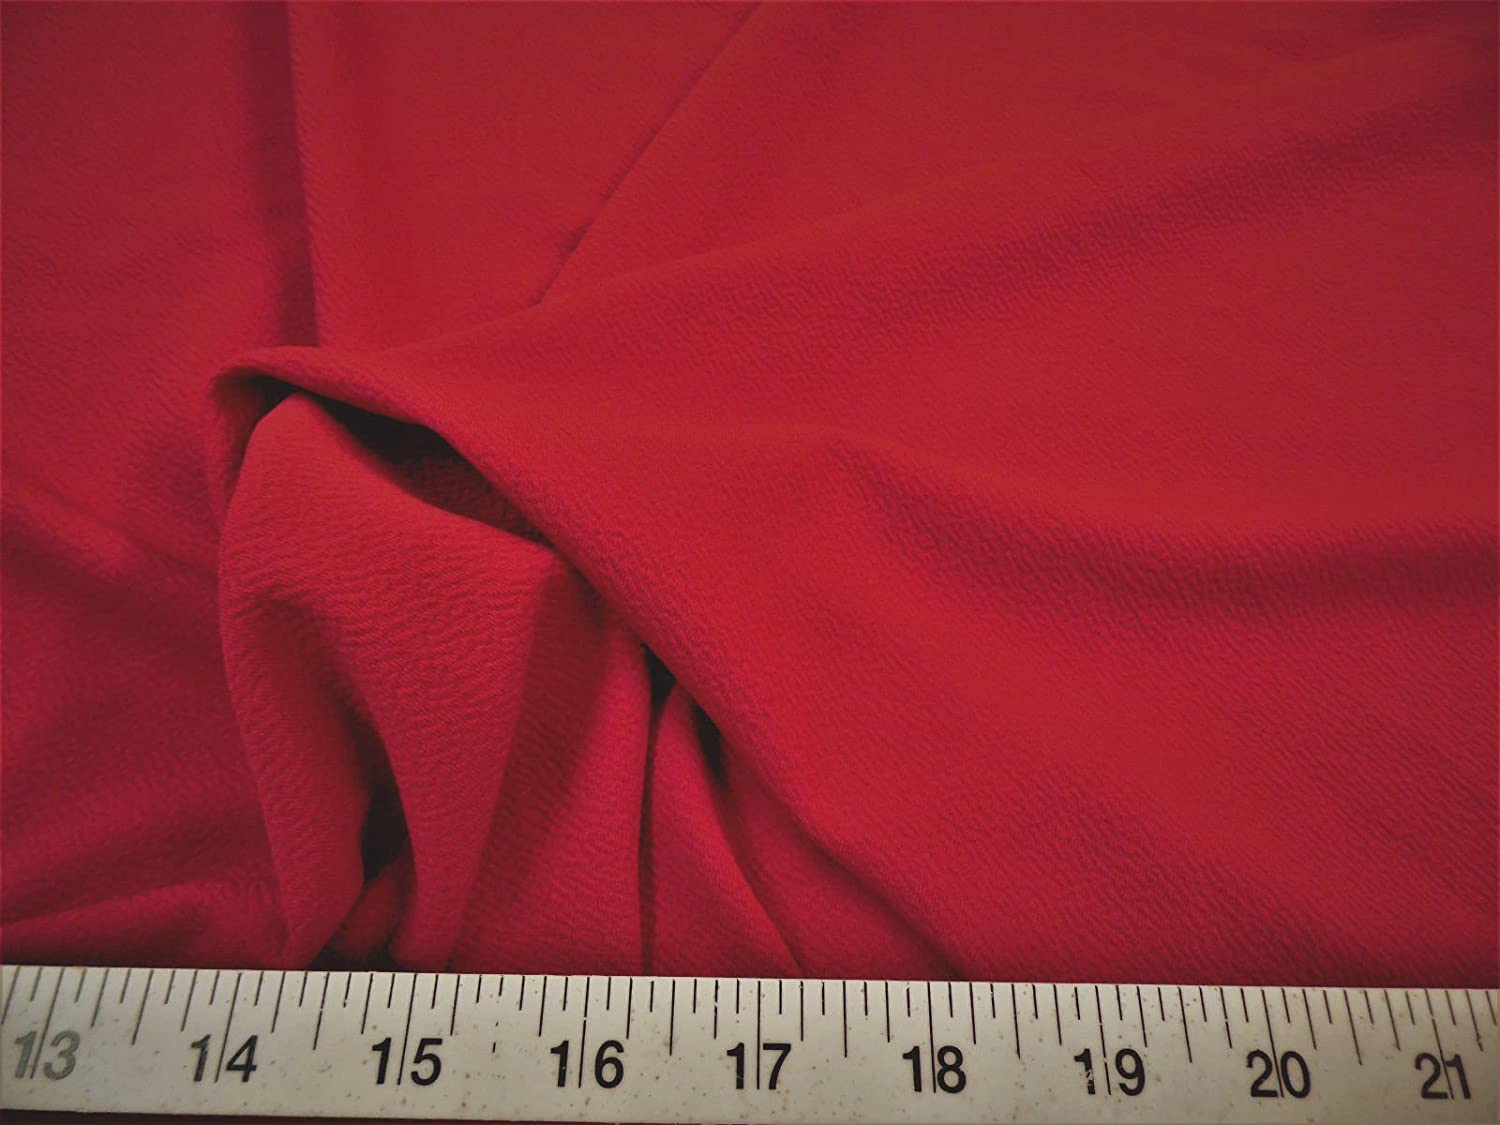 Paylessfabric Fabric Liverpool Textured 4 Way Stretch Scuba Ruby Red LP12